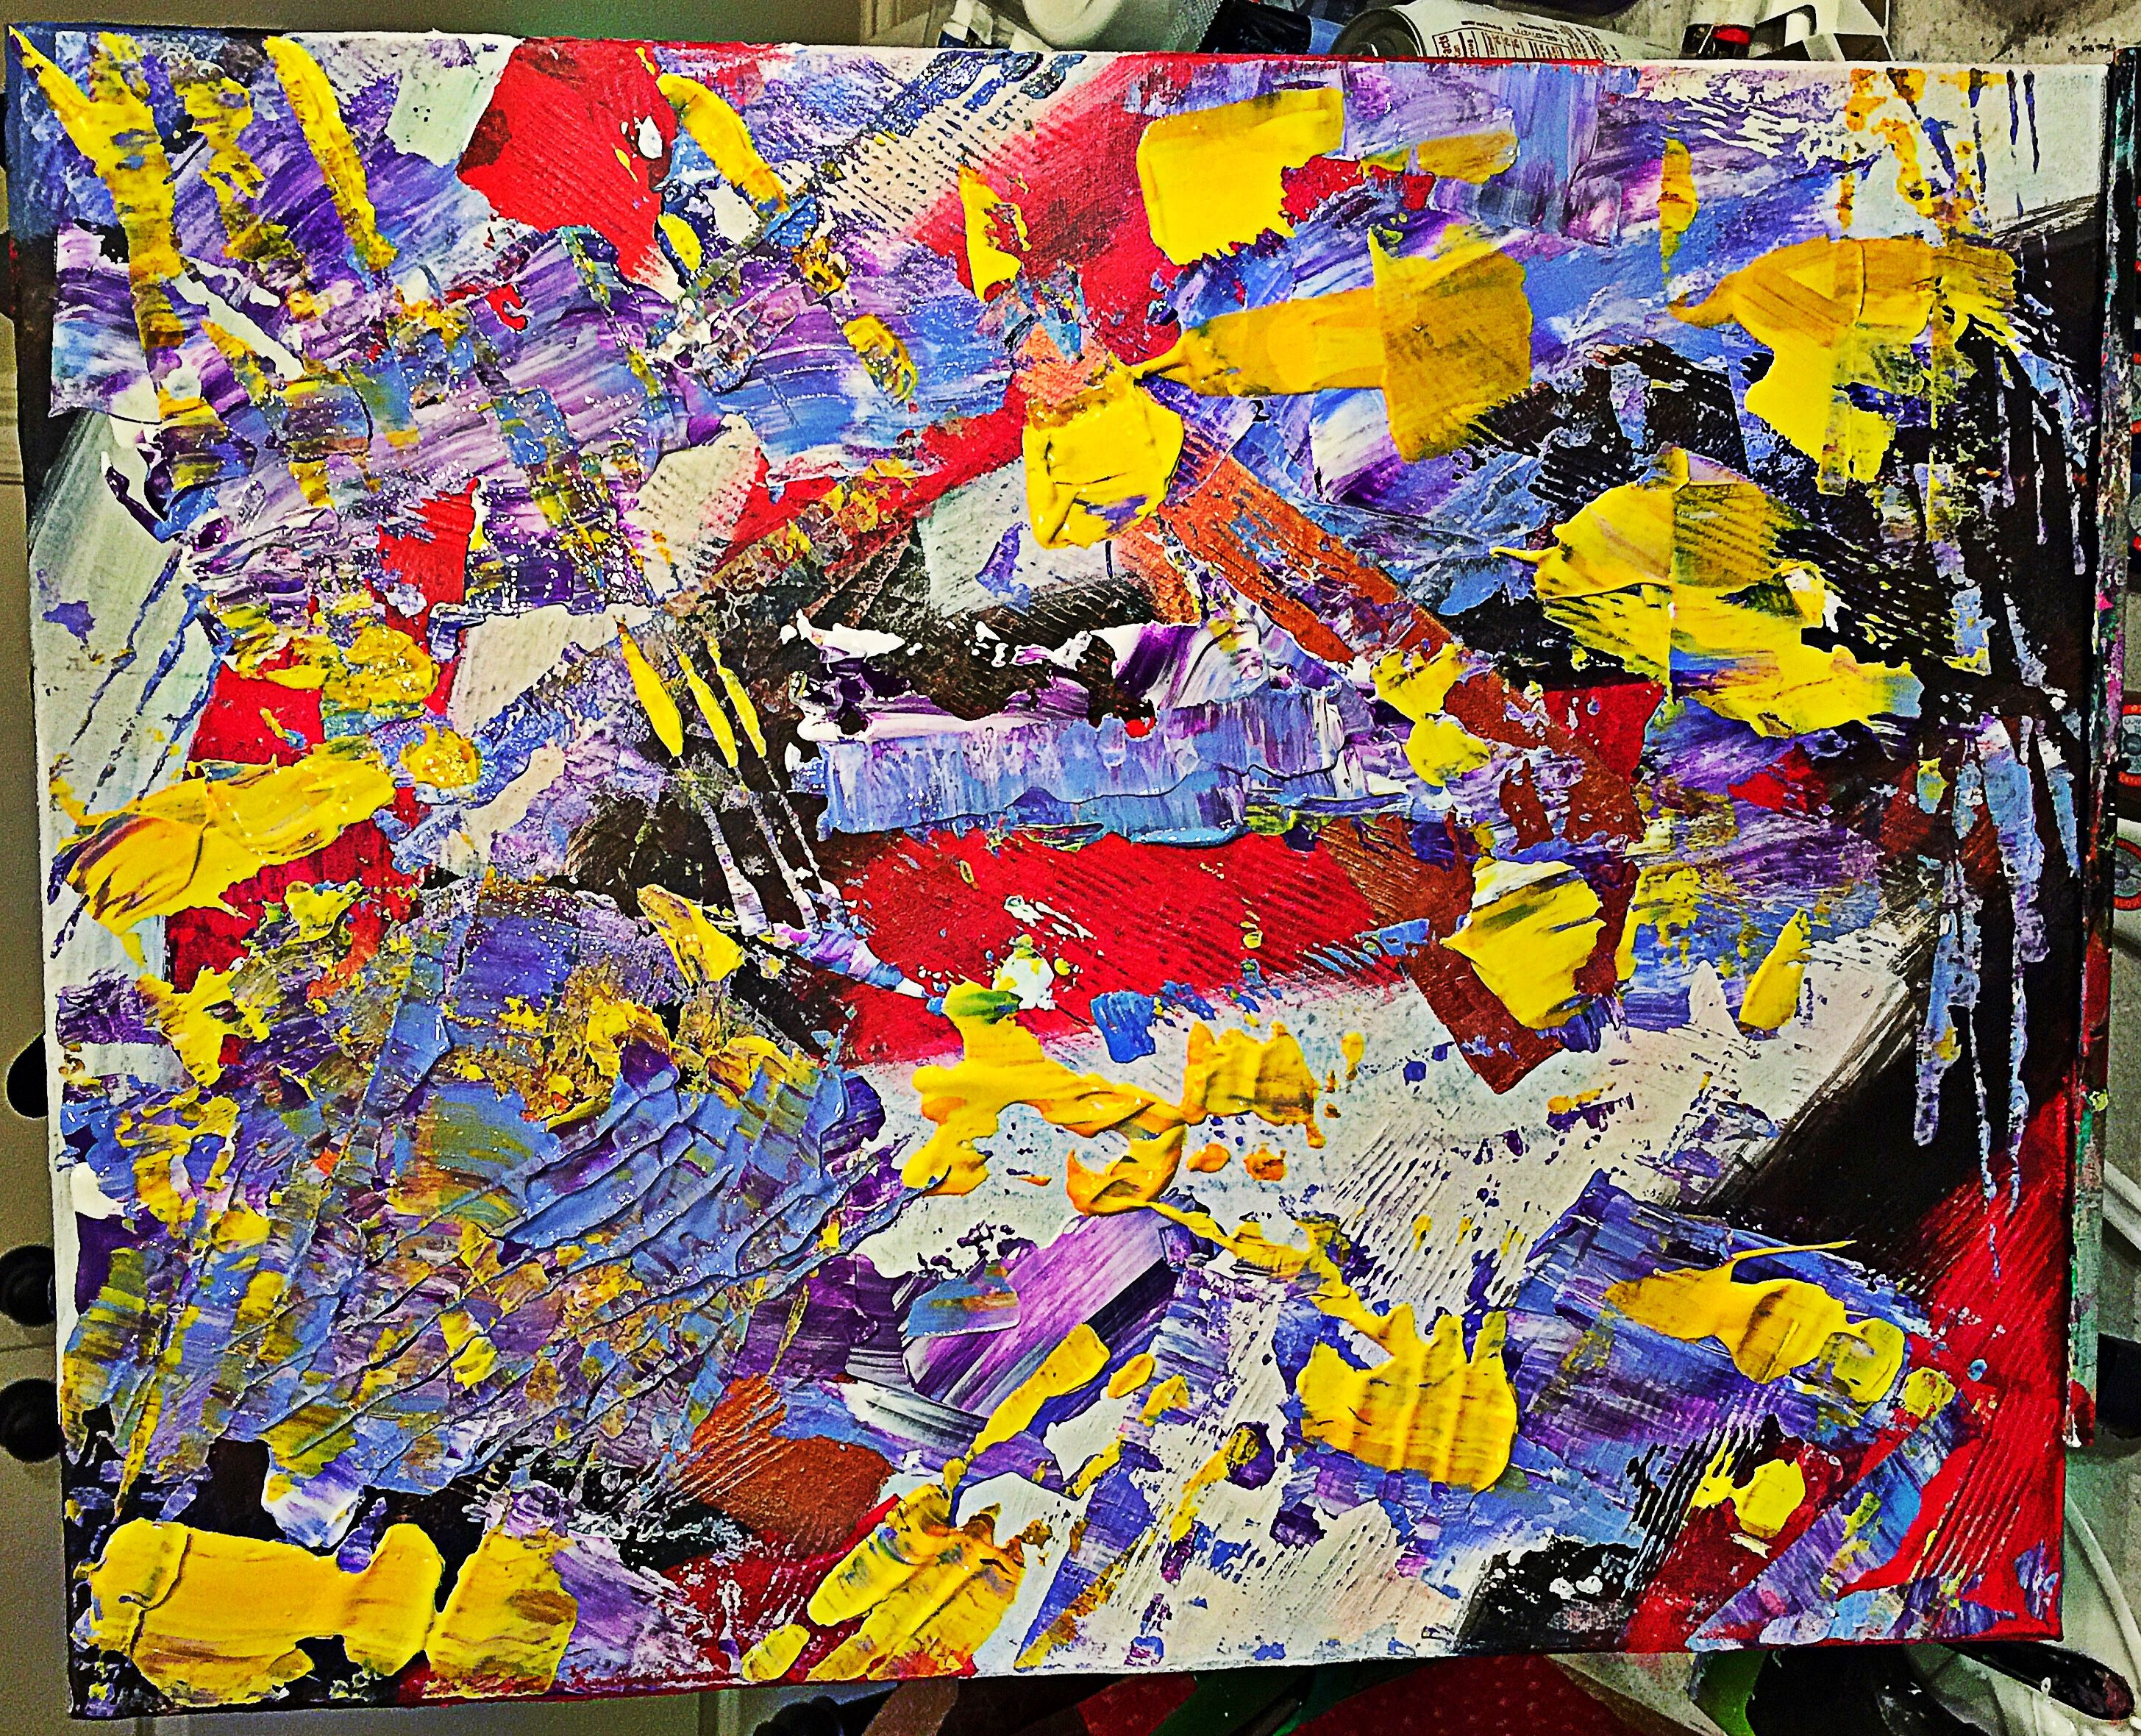 16''x 20'' Purple, yellow, red, black, white, textured